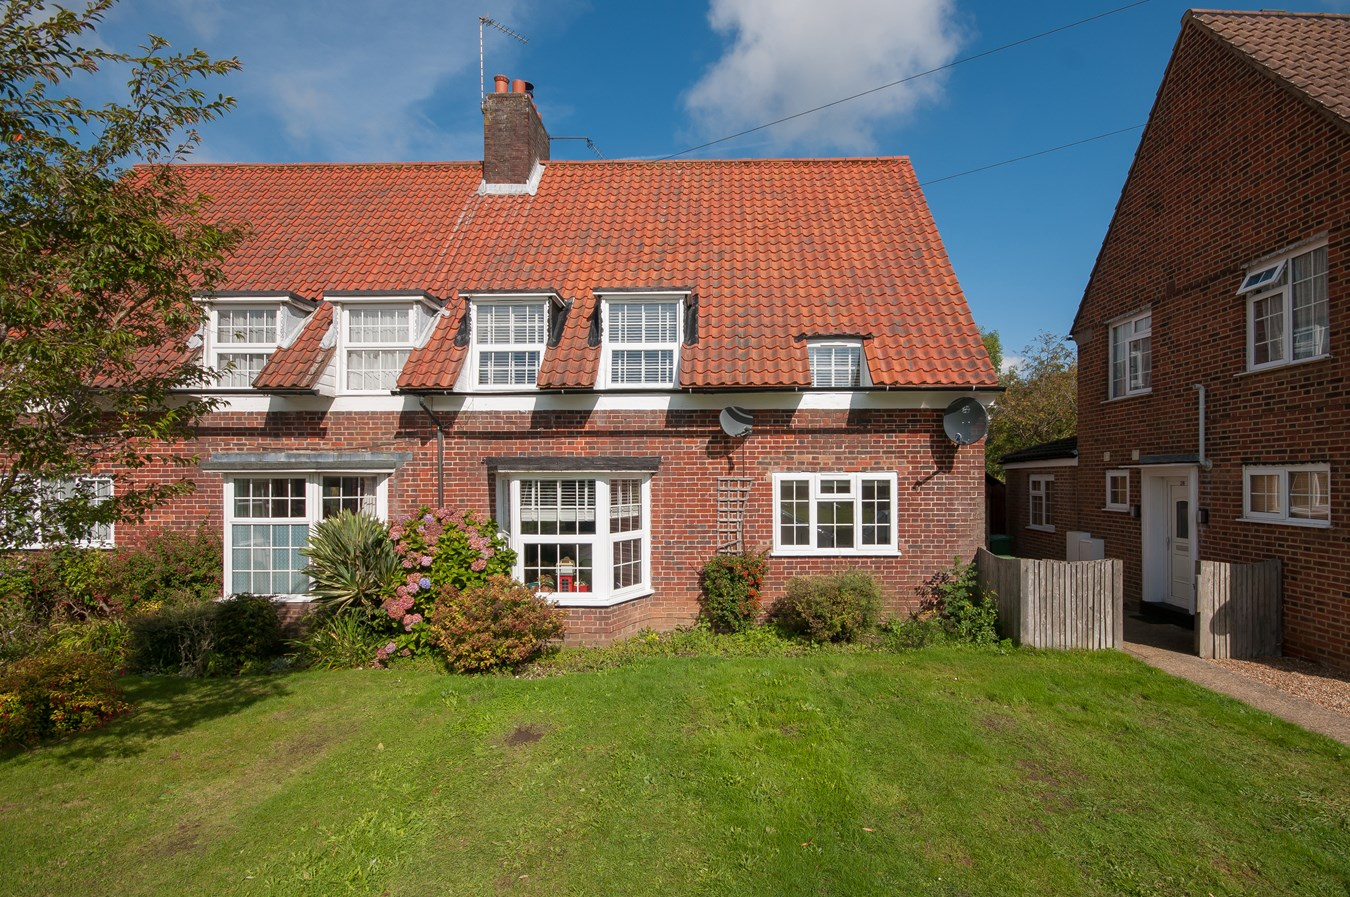 3 Bedroom Semi Detached House For Sale In Walton On The Hill